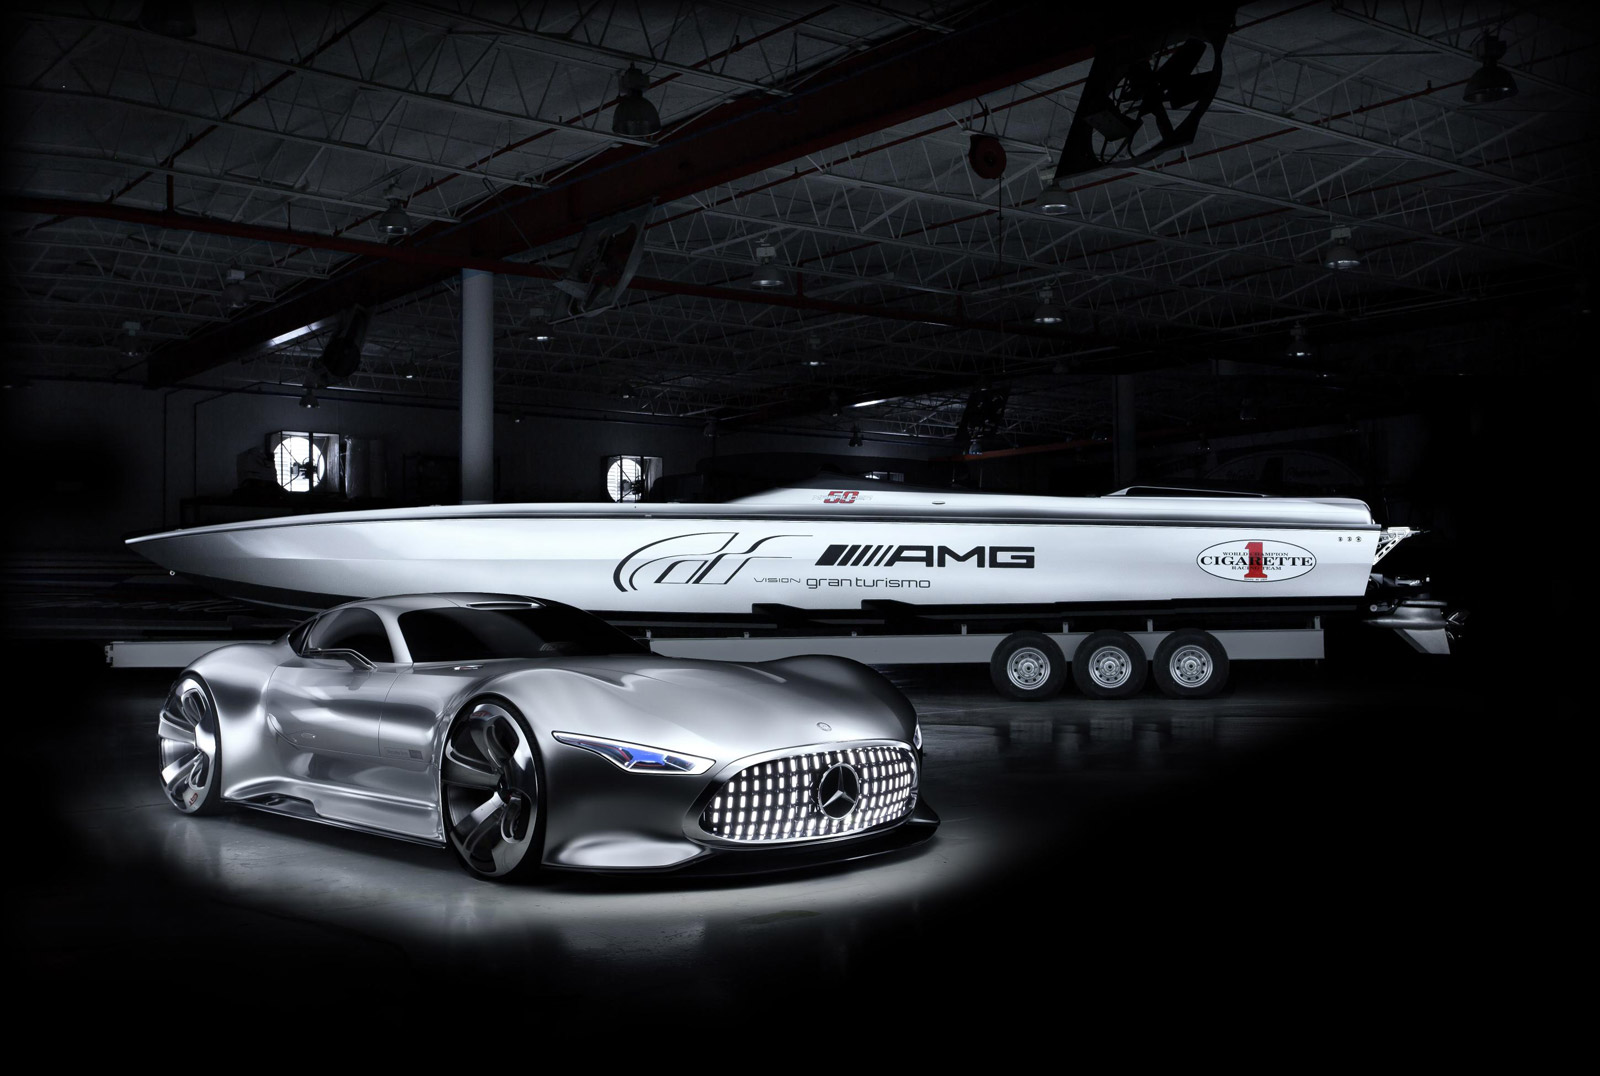 Meet Cigarette Racing's New Speed Boat Inspired By The Mercedes AMG Vision GT